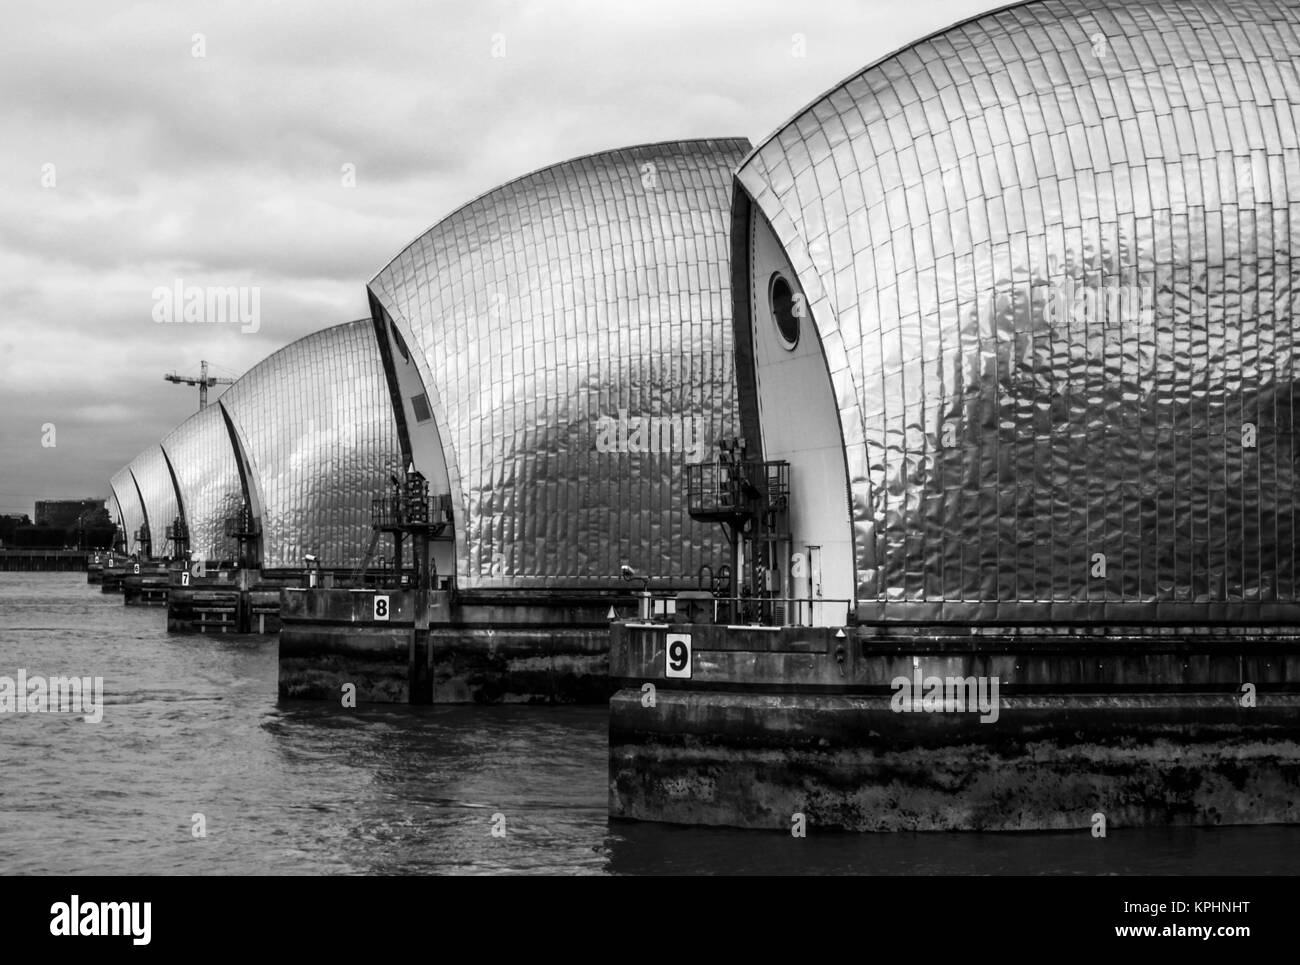 THAMES BARRIER, LONDON, GREAT BRITAIN - Stock Image